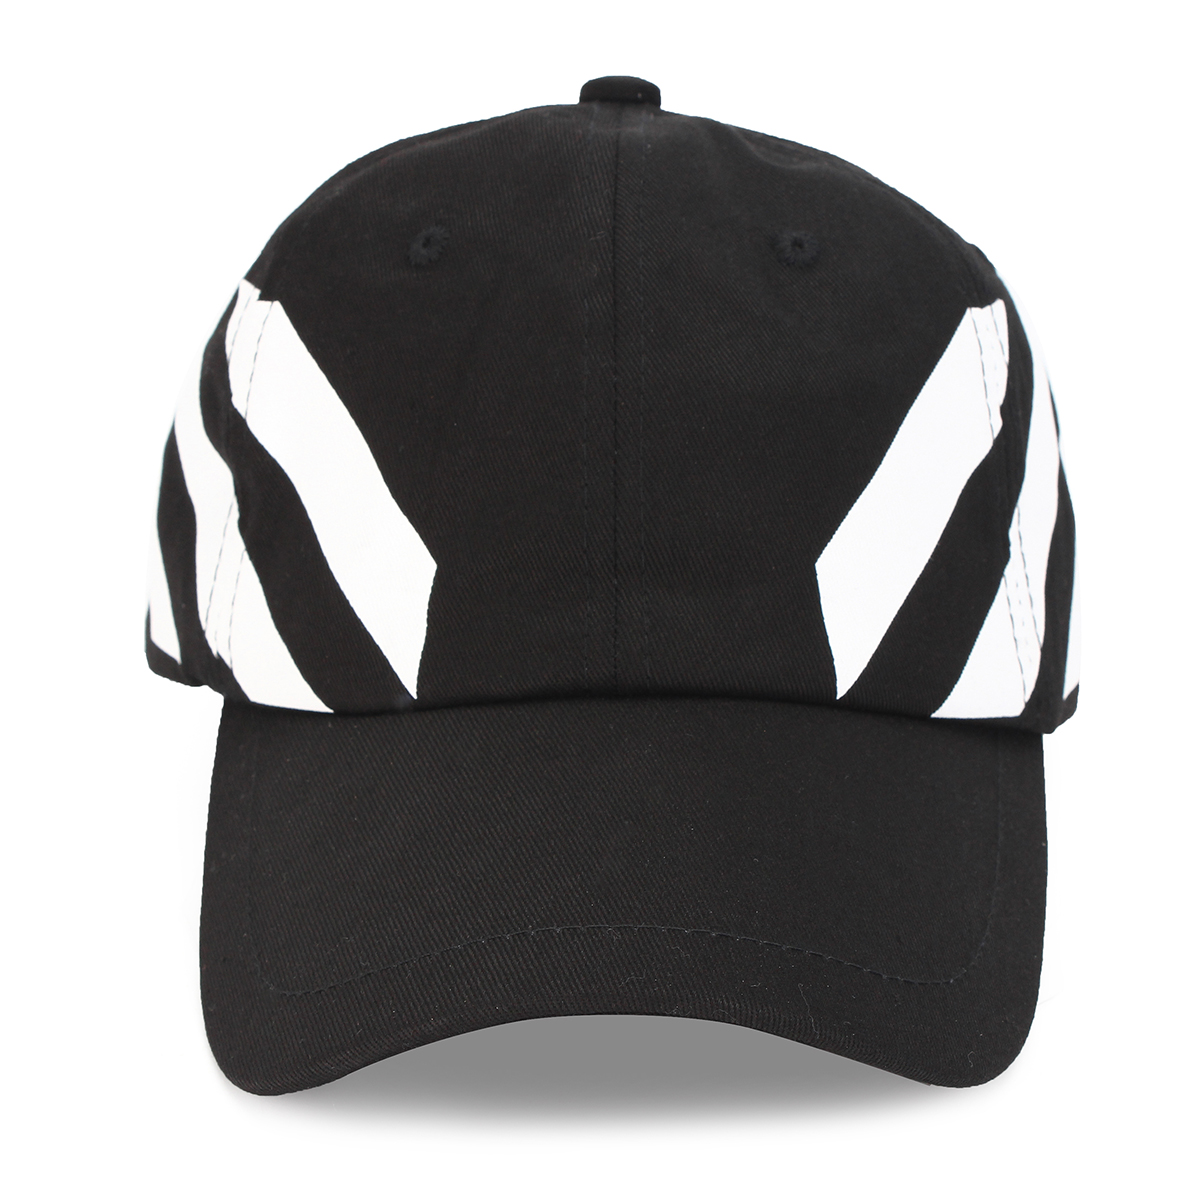 Sport Snapback Baseball Hat Casual Camouflage Cotton Adjustable Hip-Hop Cap for Women Men